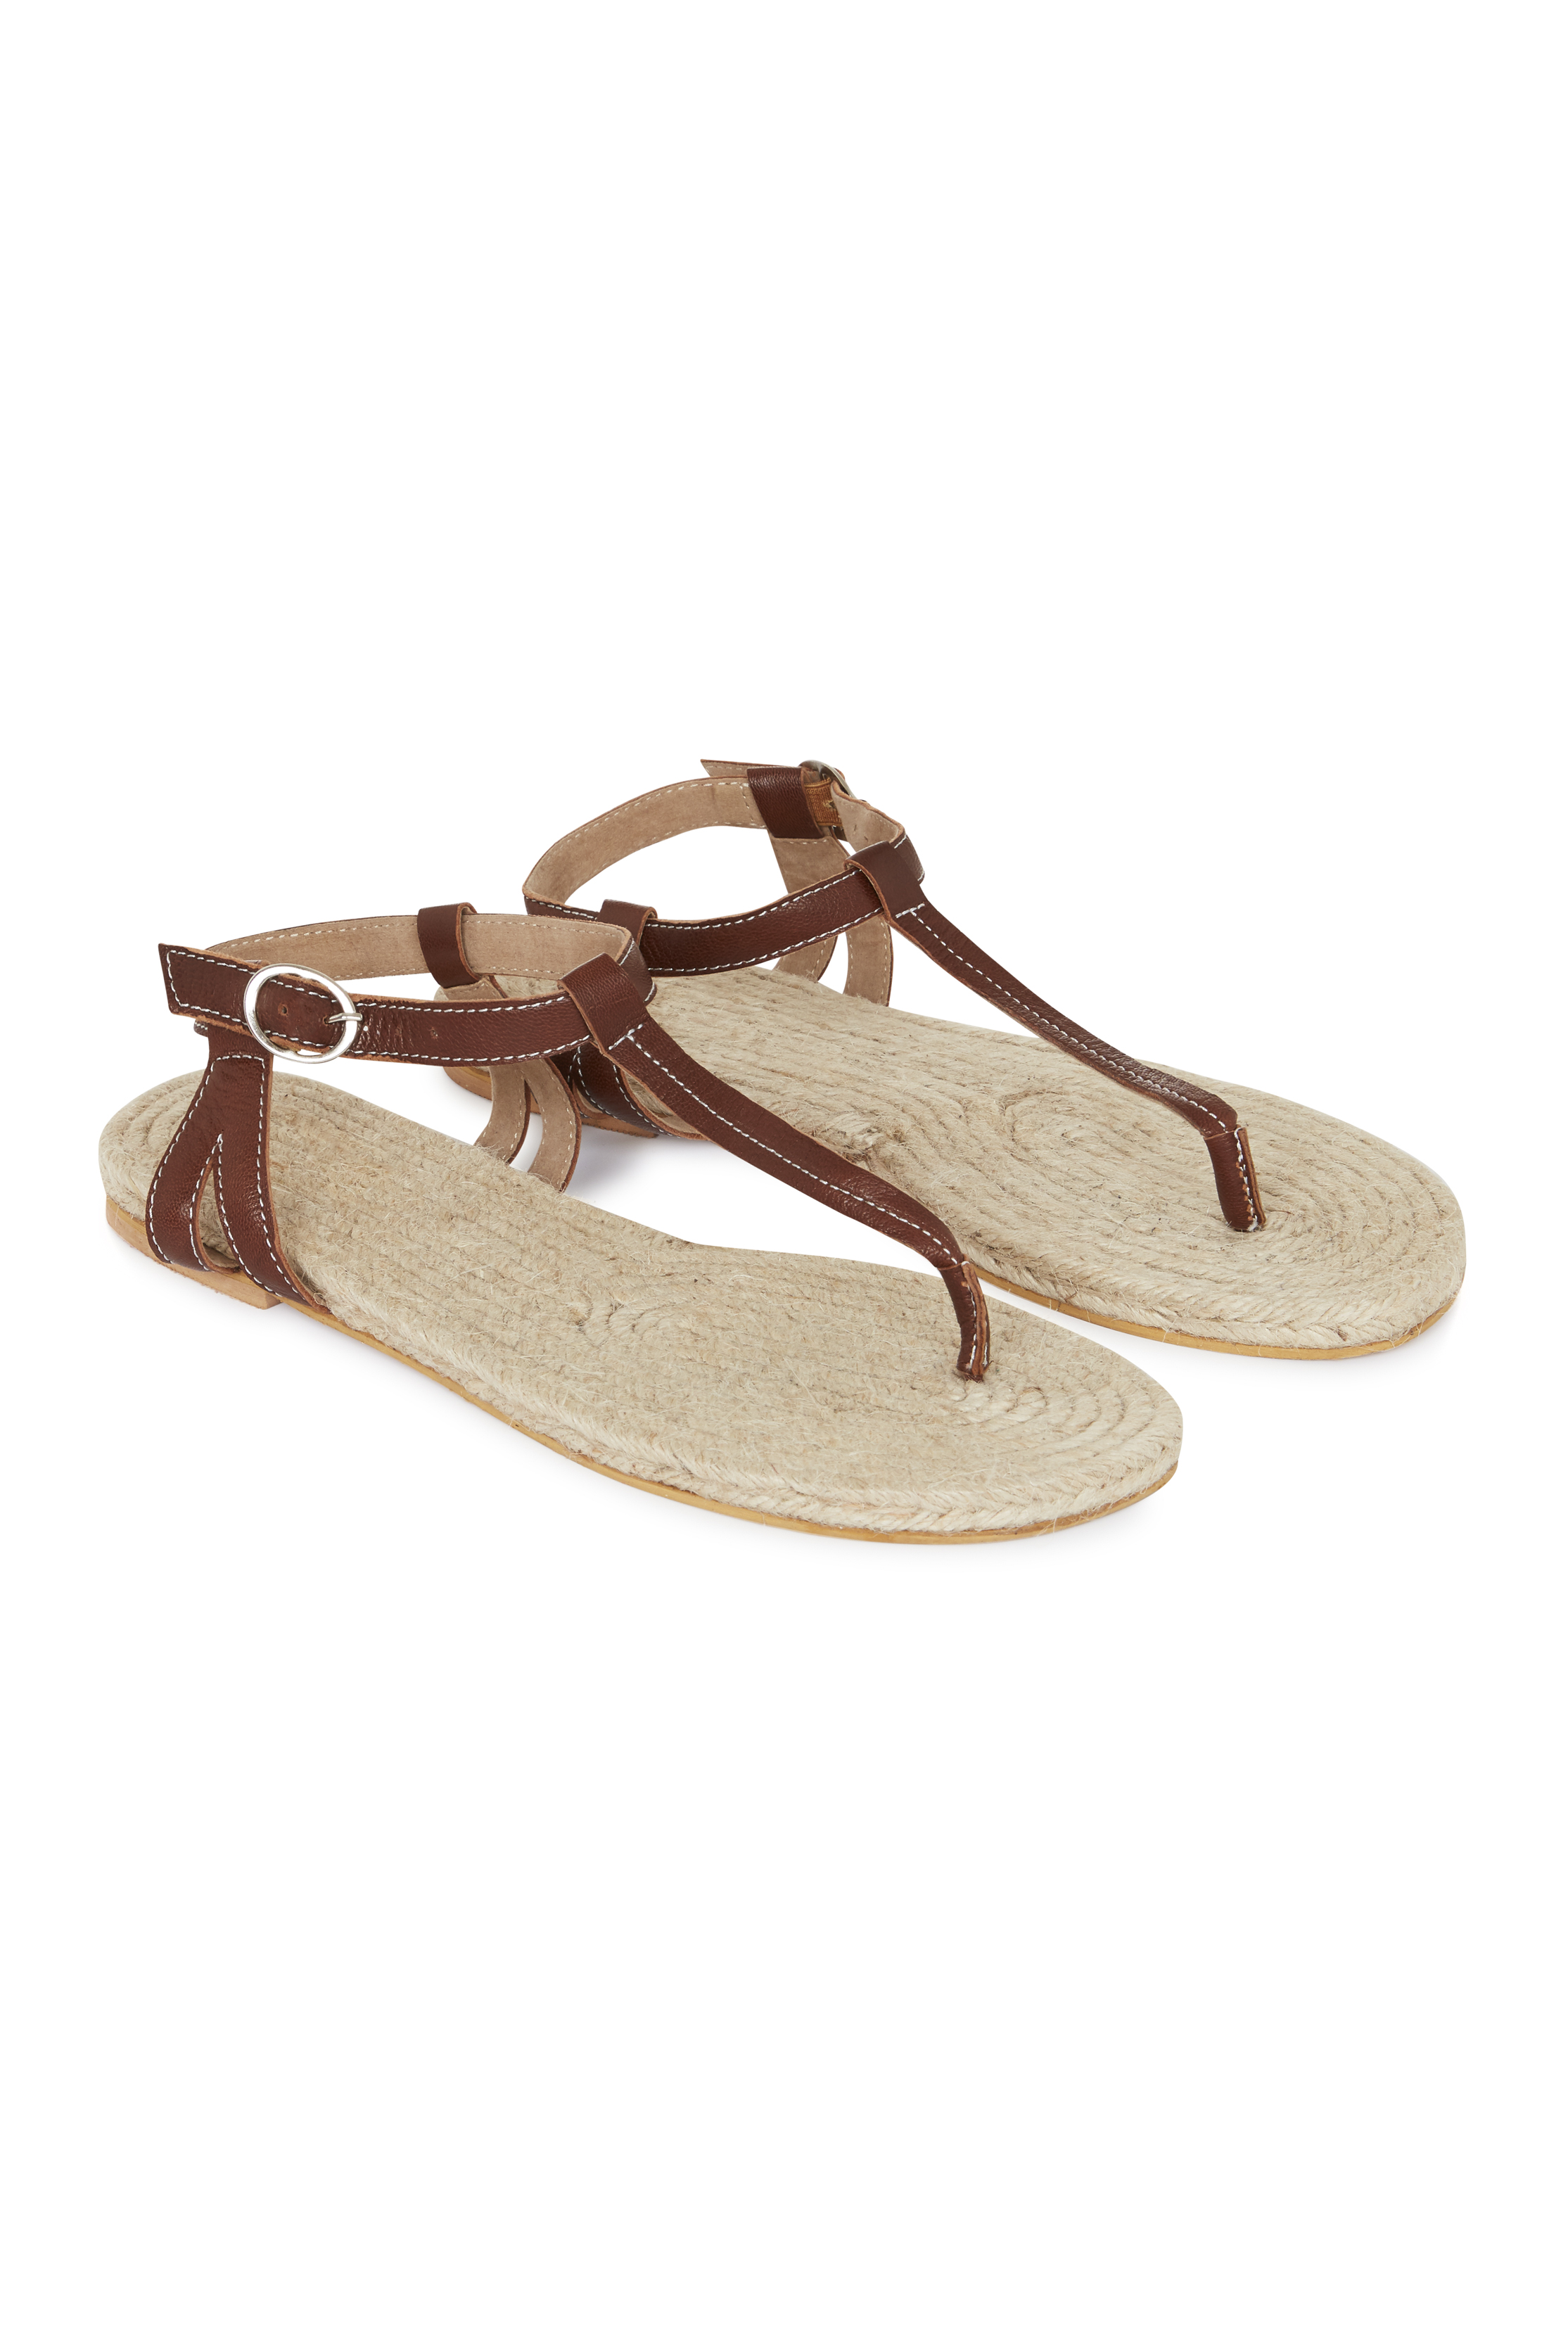 Tan Leather Jute Footbed T-Bar Sandal